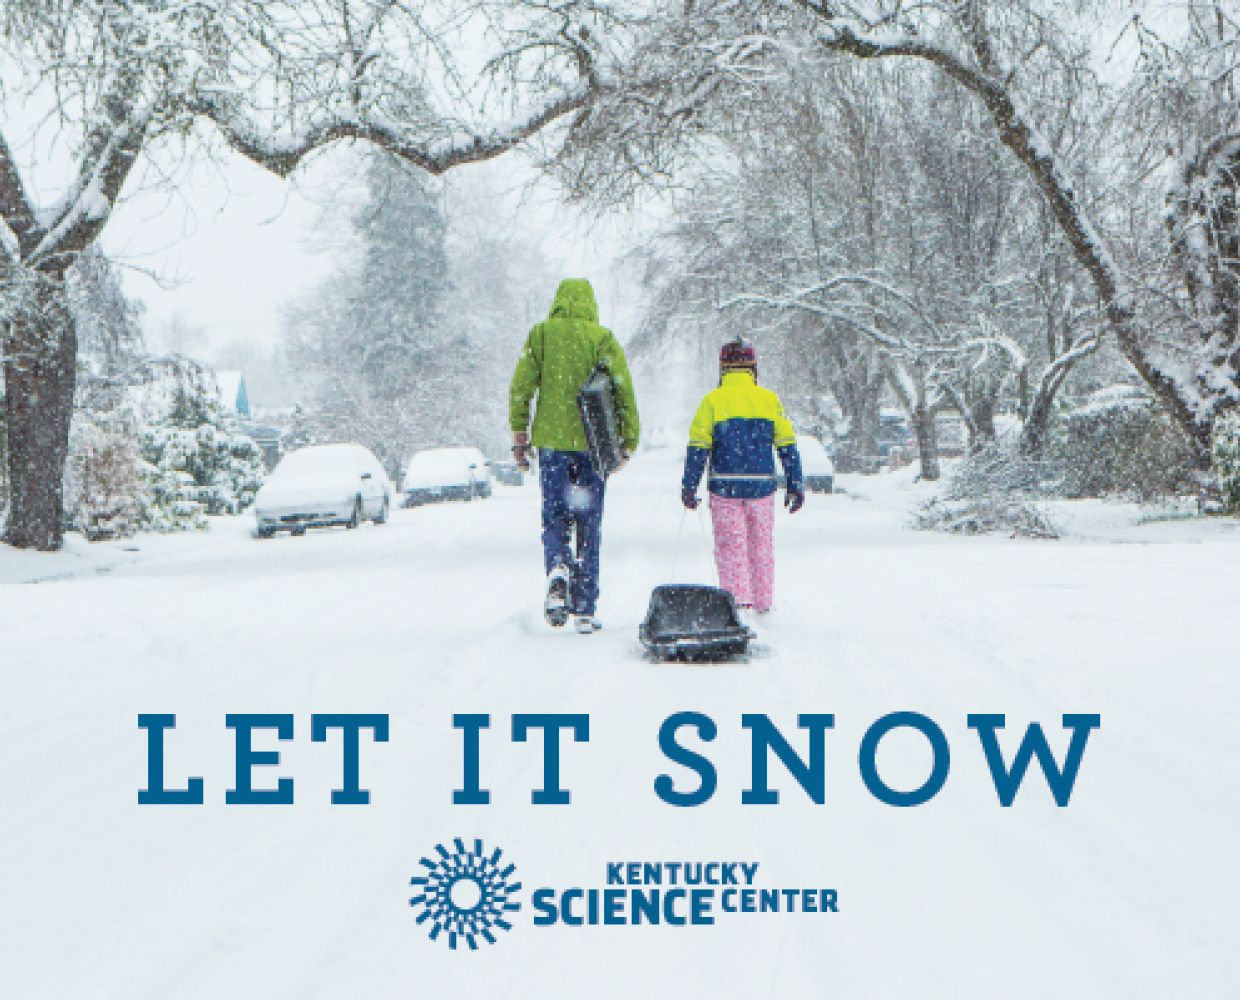 February 12 - KSC Snow Days image